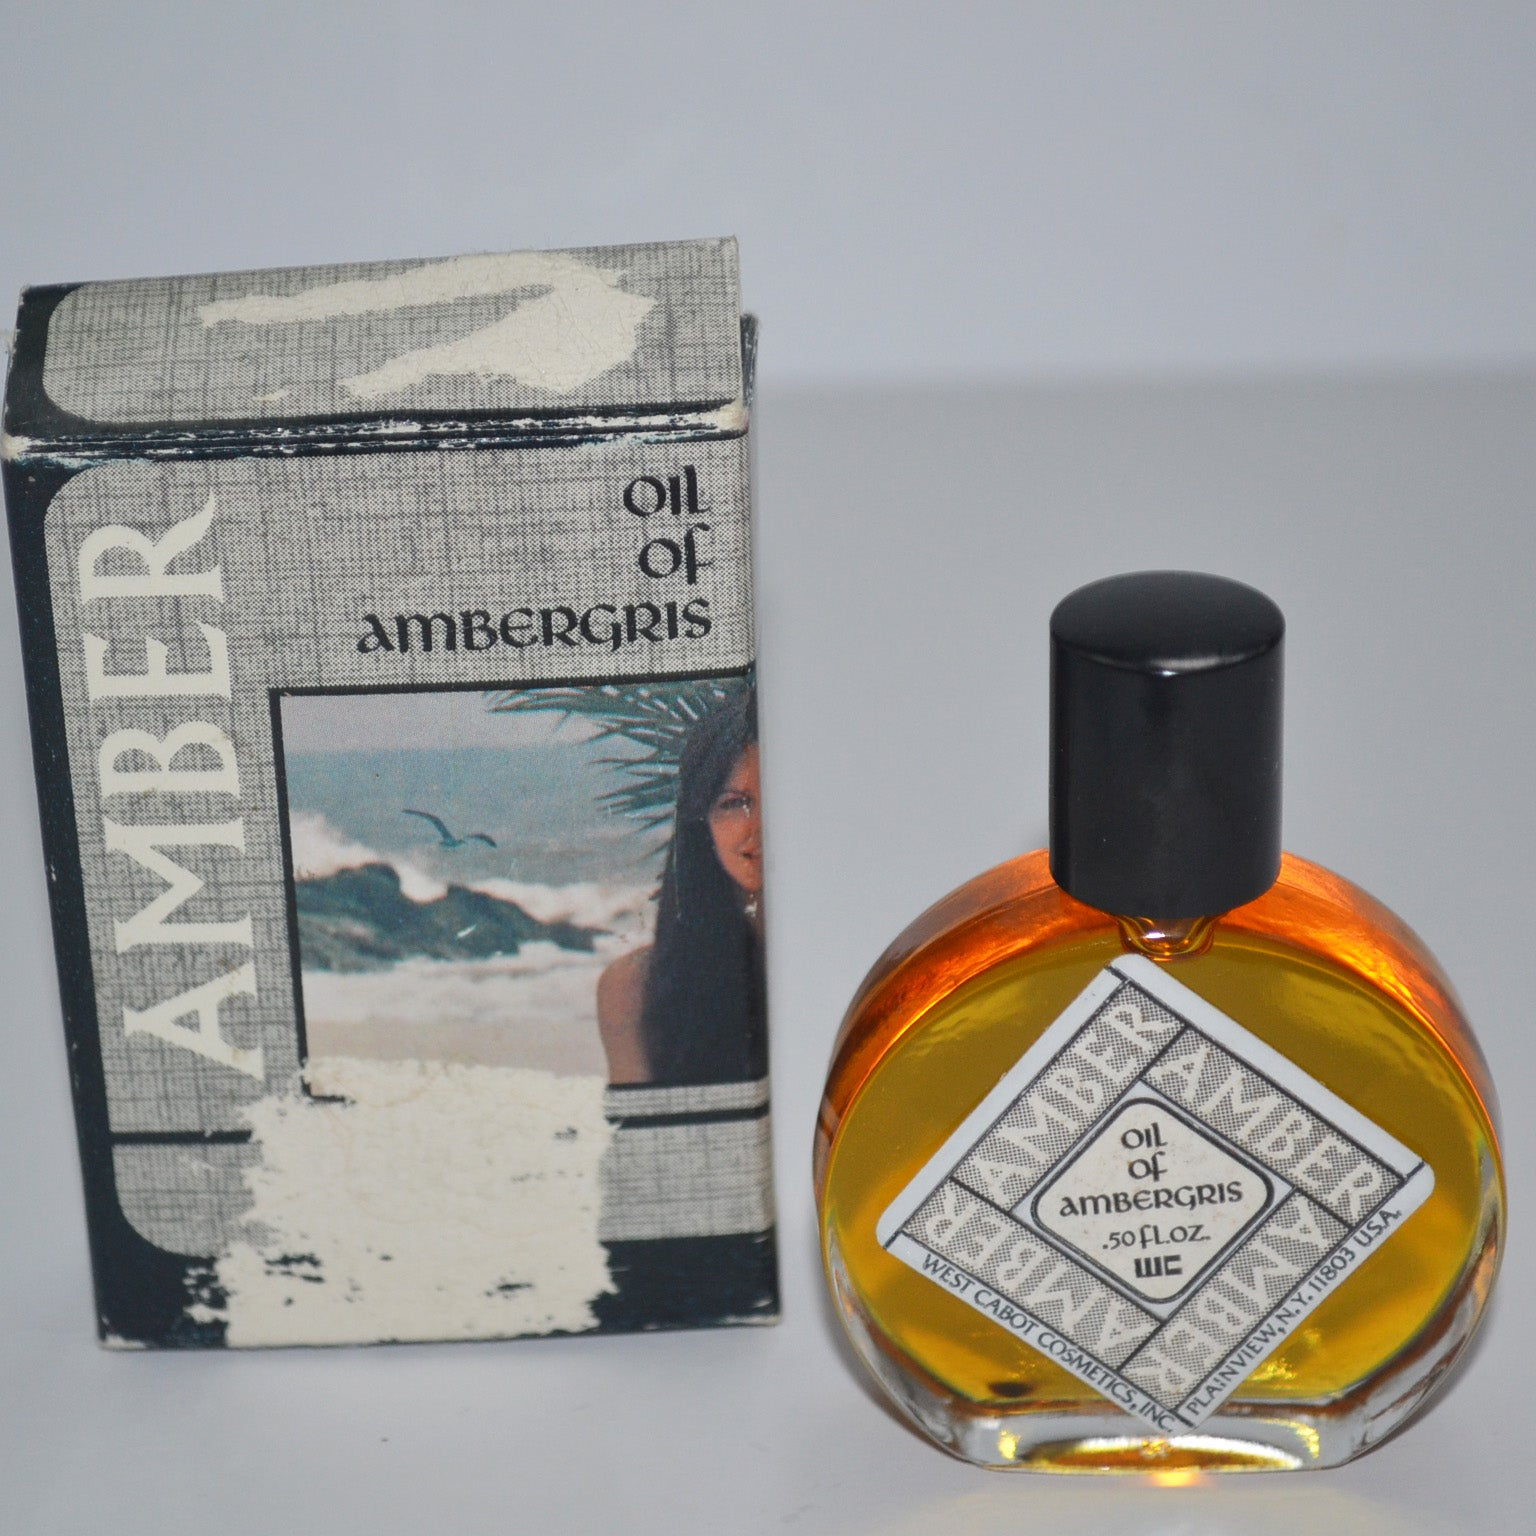 Vintage Amber Oil of Ambergris By West Cabot Cosmetics